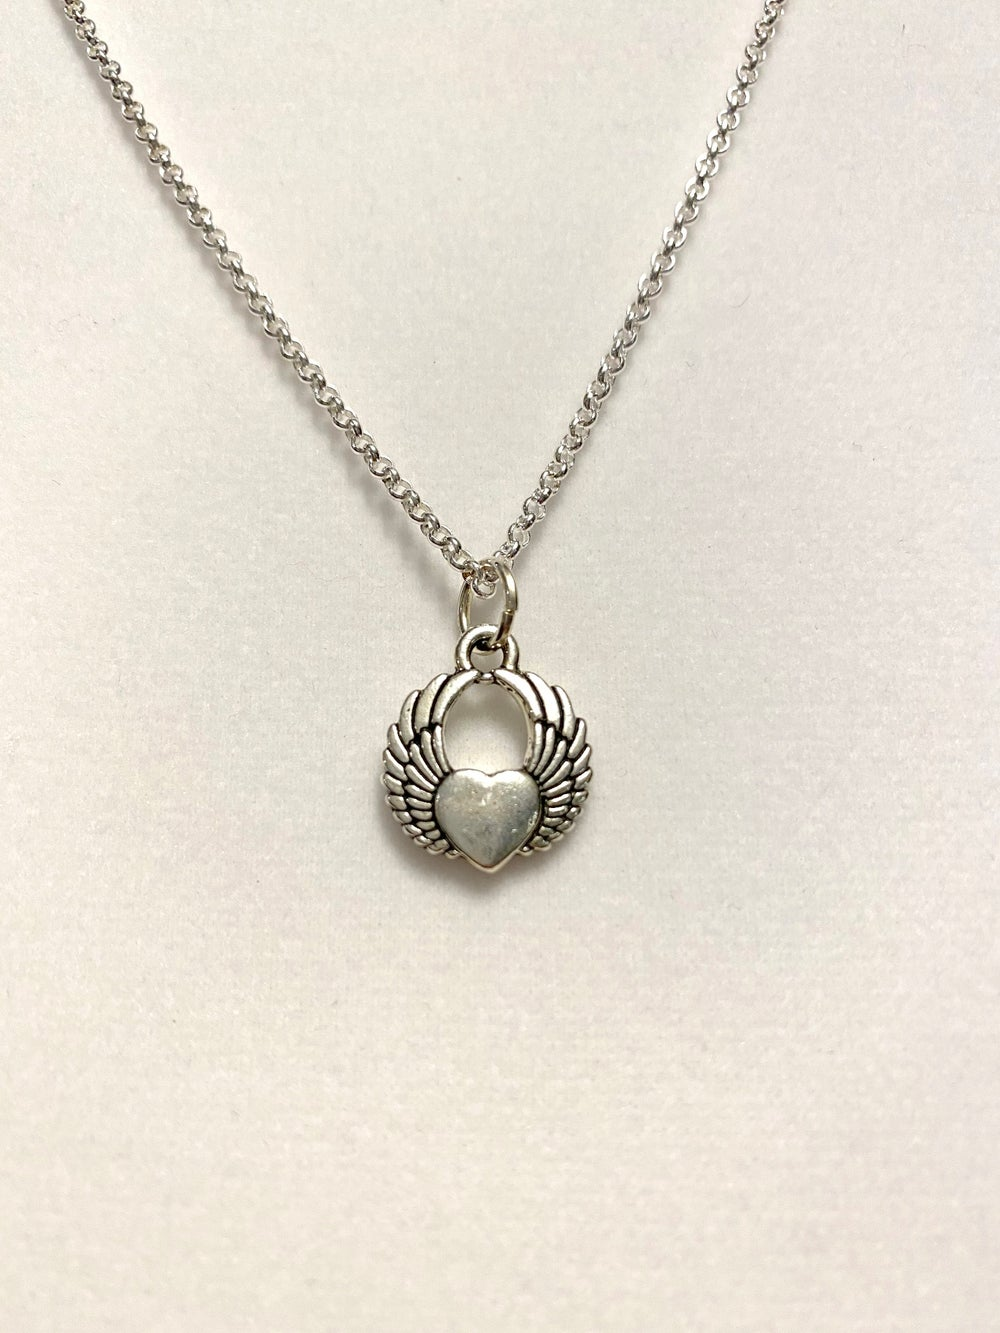 Silver Winged Heart and Chain Necklace